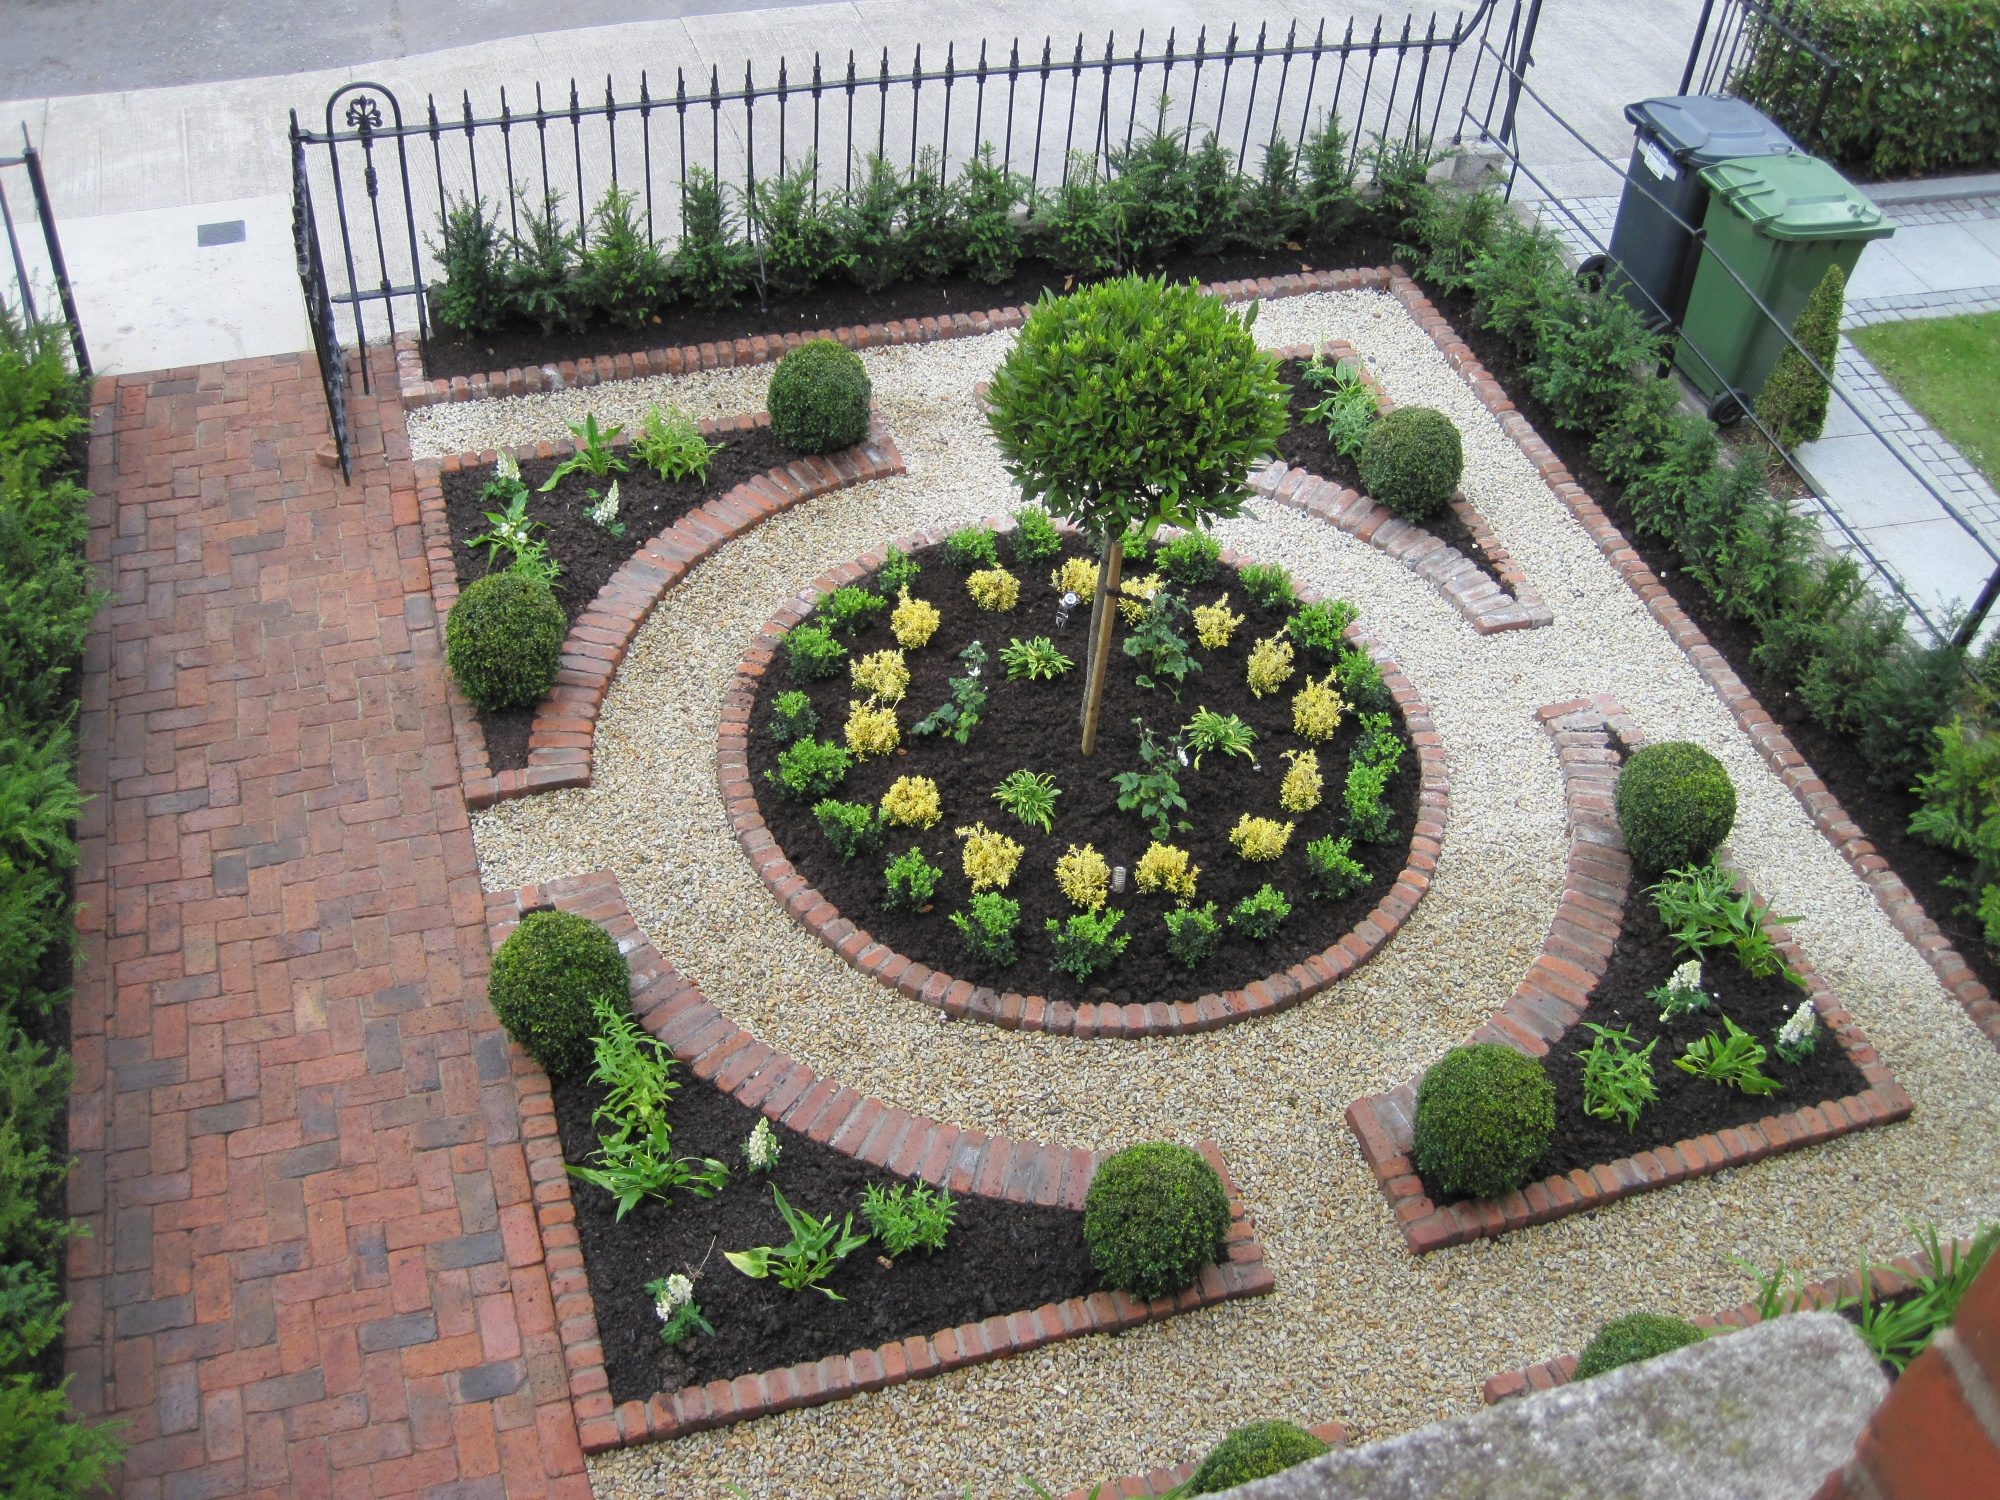 Formal Garden Design terrace with dining and seating area and a path running through a formal garden garden Formal Parterre Overview